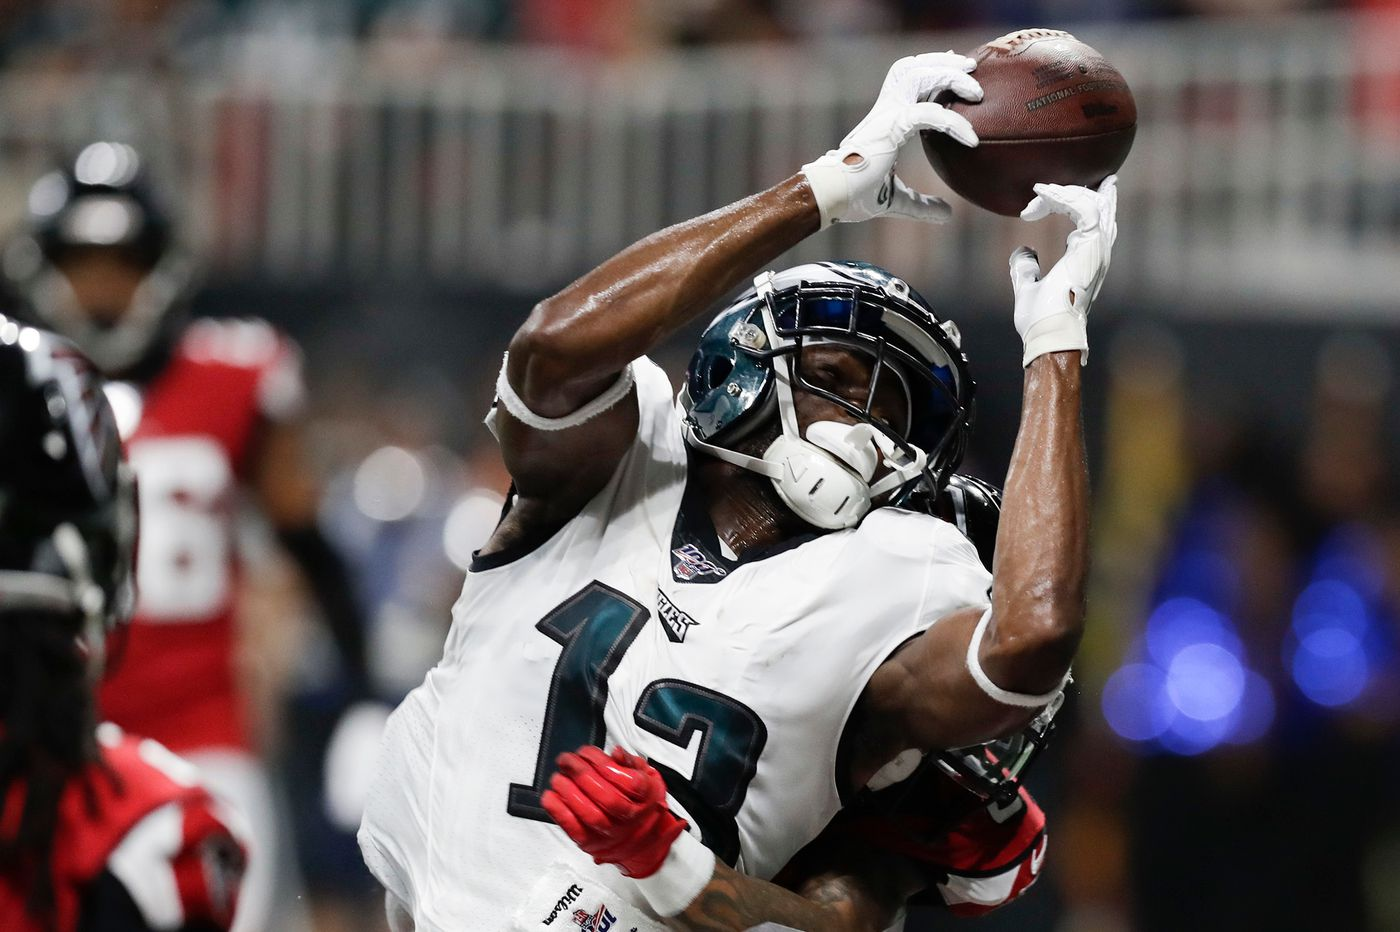 Nelson Agholor's drop cost the Eagles. Now he has to let go of the past again. | Mike Sielski